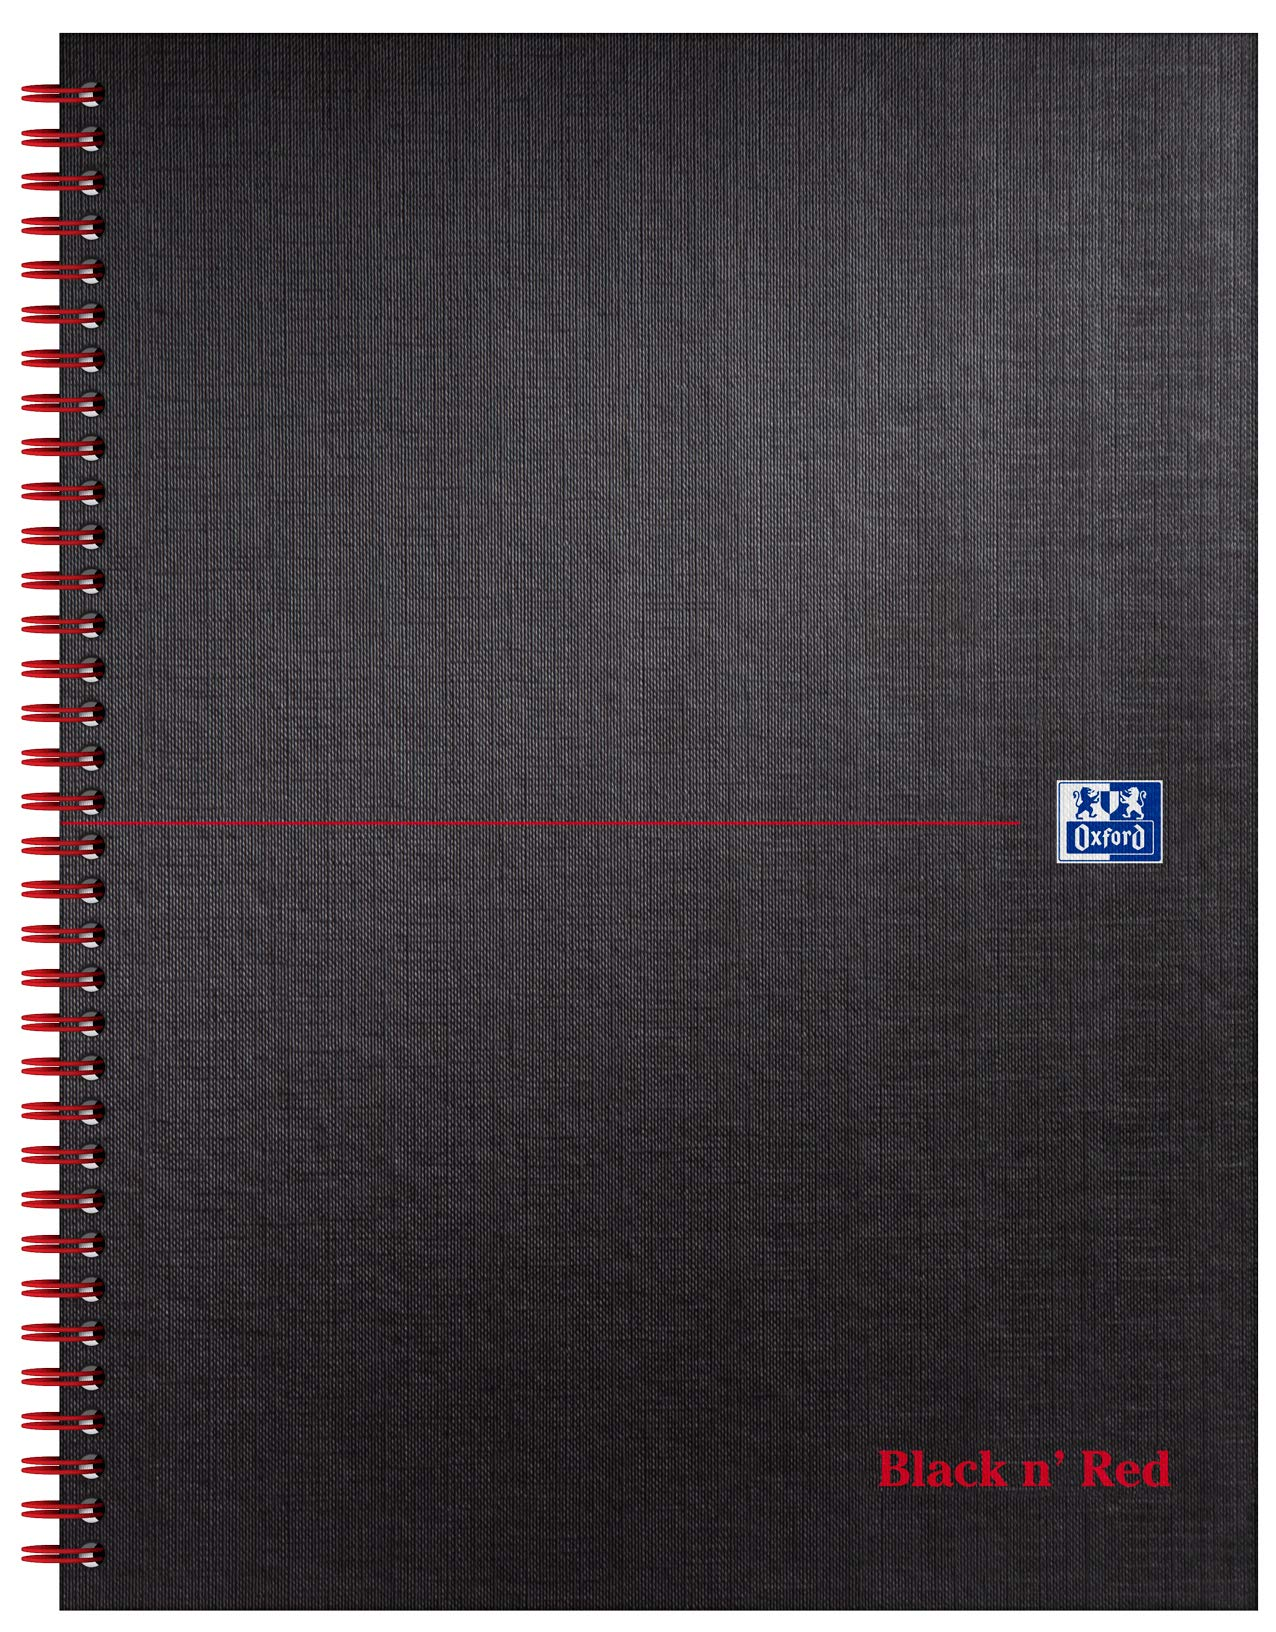 Oxford Black n' Red A4+ Matt Black Wirebound Hardback Notebook, Ruled with Margin and Perforated 140 Pages